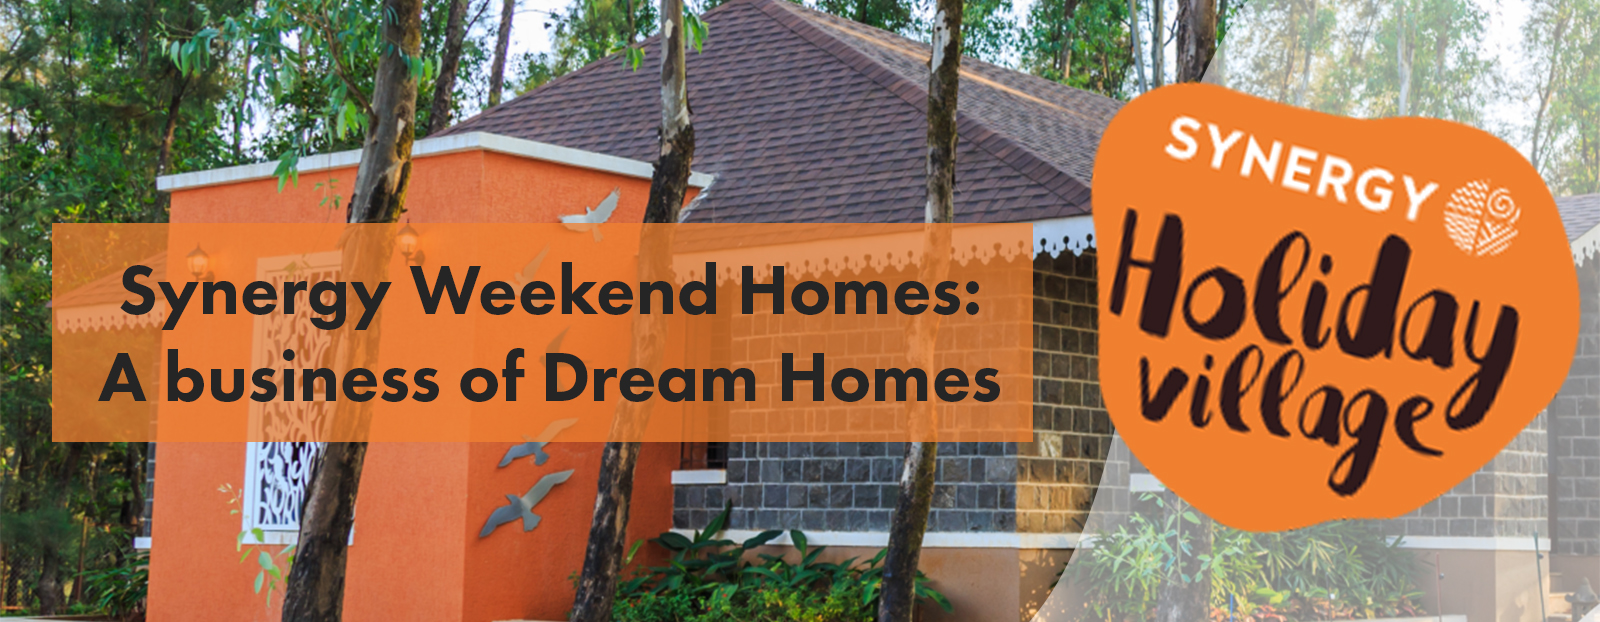 Synergy Weekend Homes: A business of Dream Homes